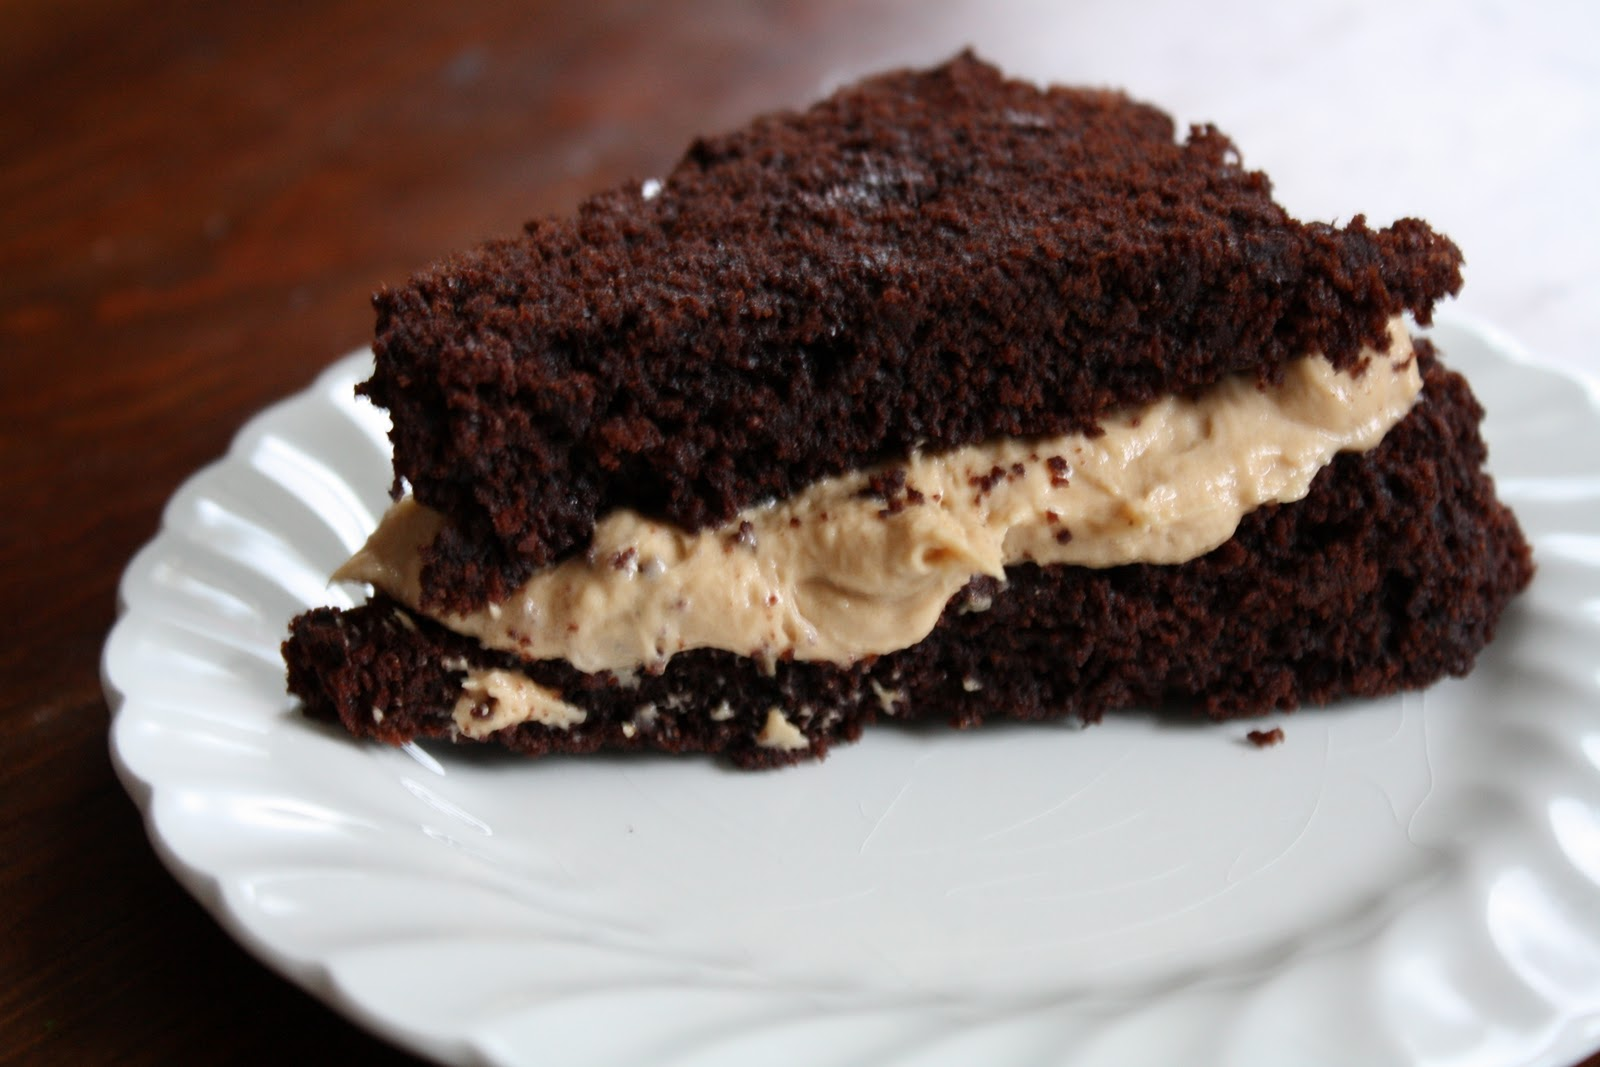 ... : Double Chocolate Loaf Cake with Peanut Butter Cream Cheese Spread